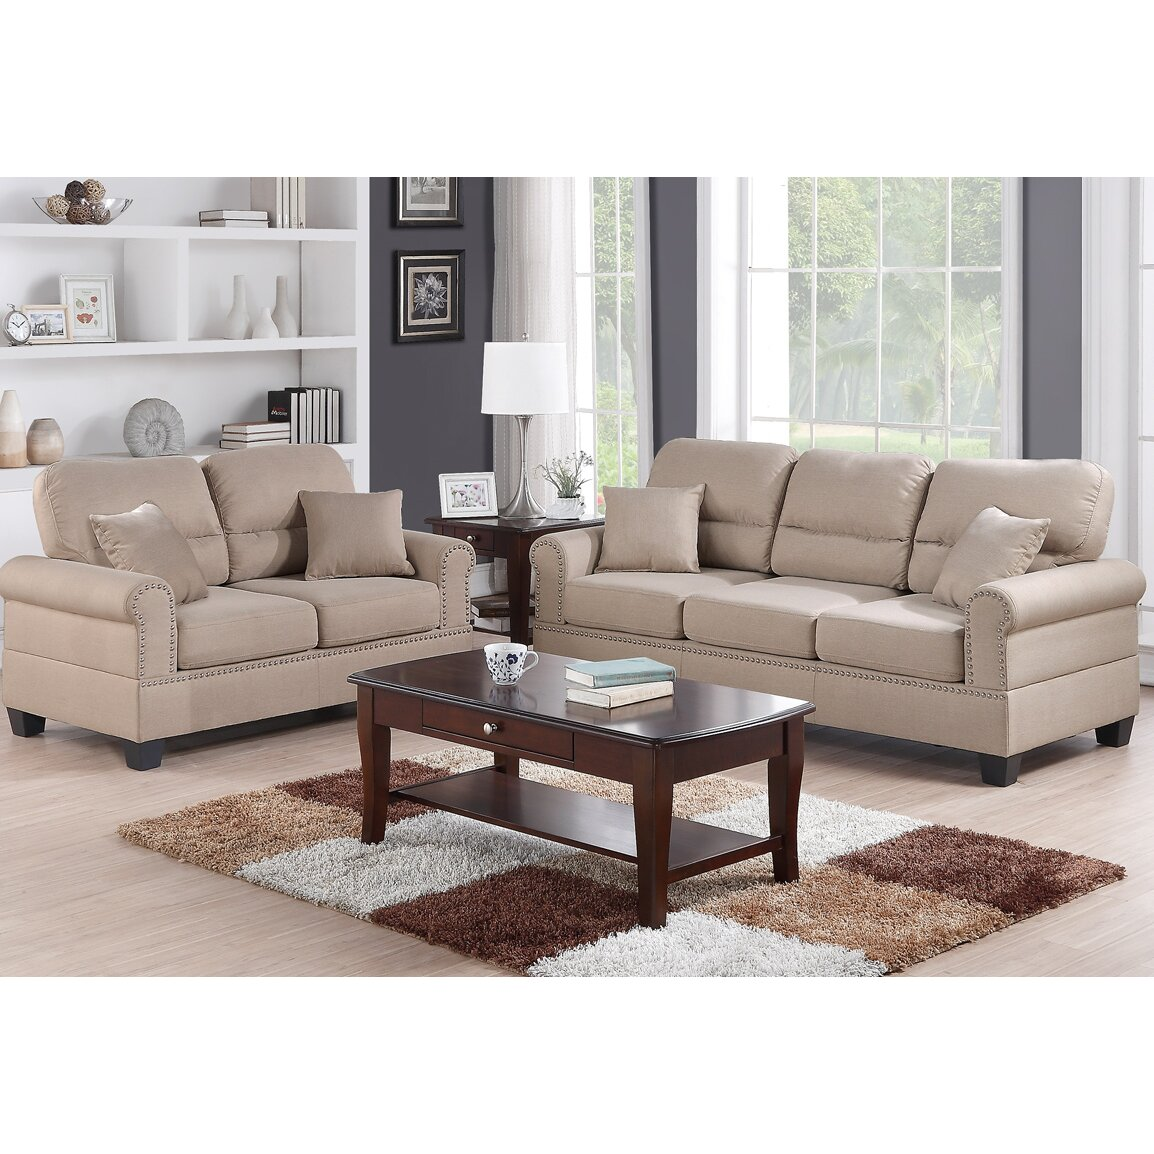 Poundex bobkona shelton sofa and loveseat set reviews for 2 piece furniture set